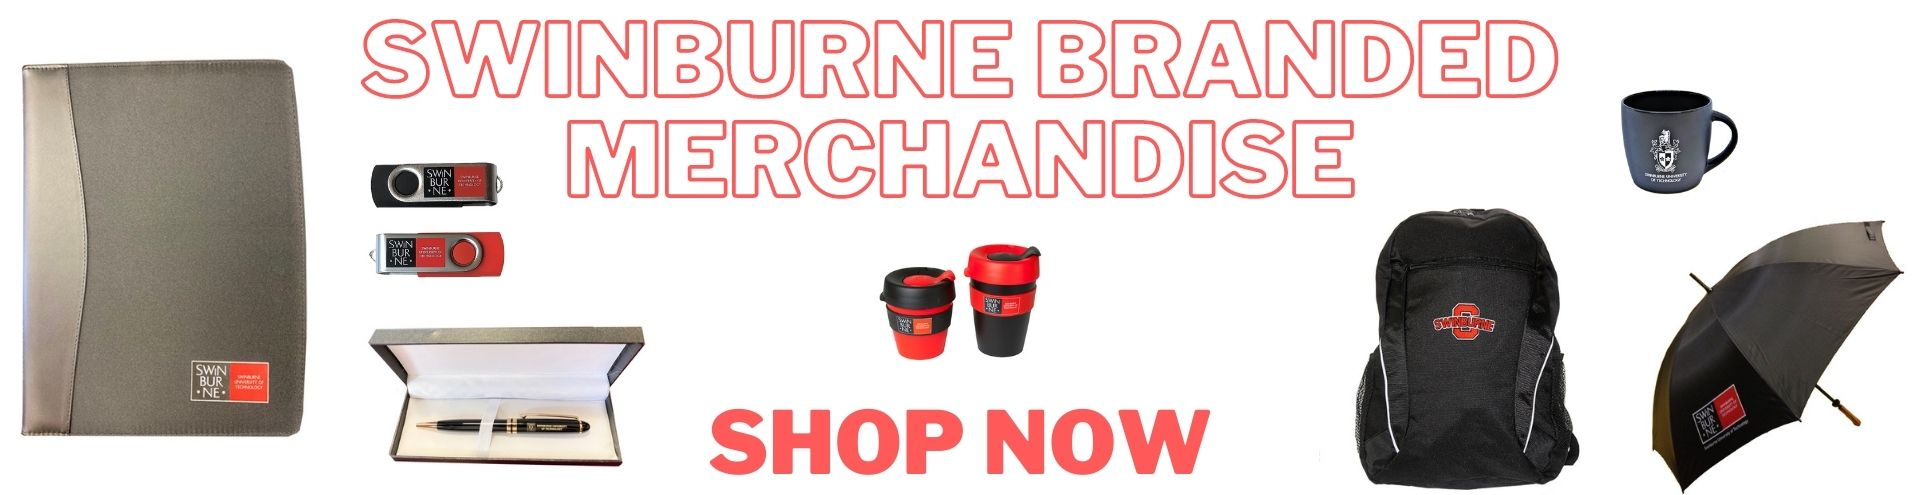 Swinburne Branded Merchandise